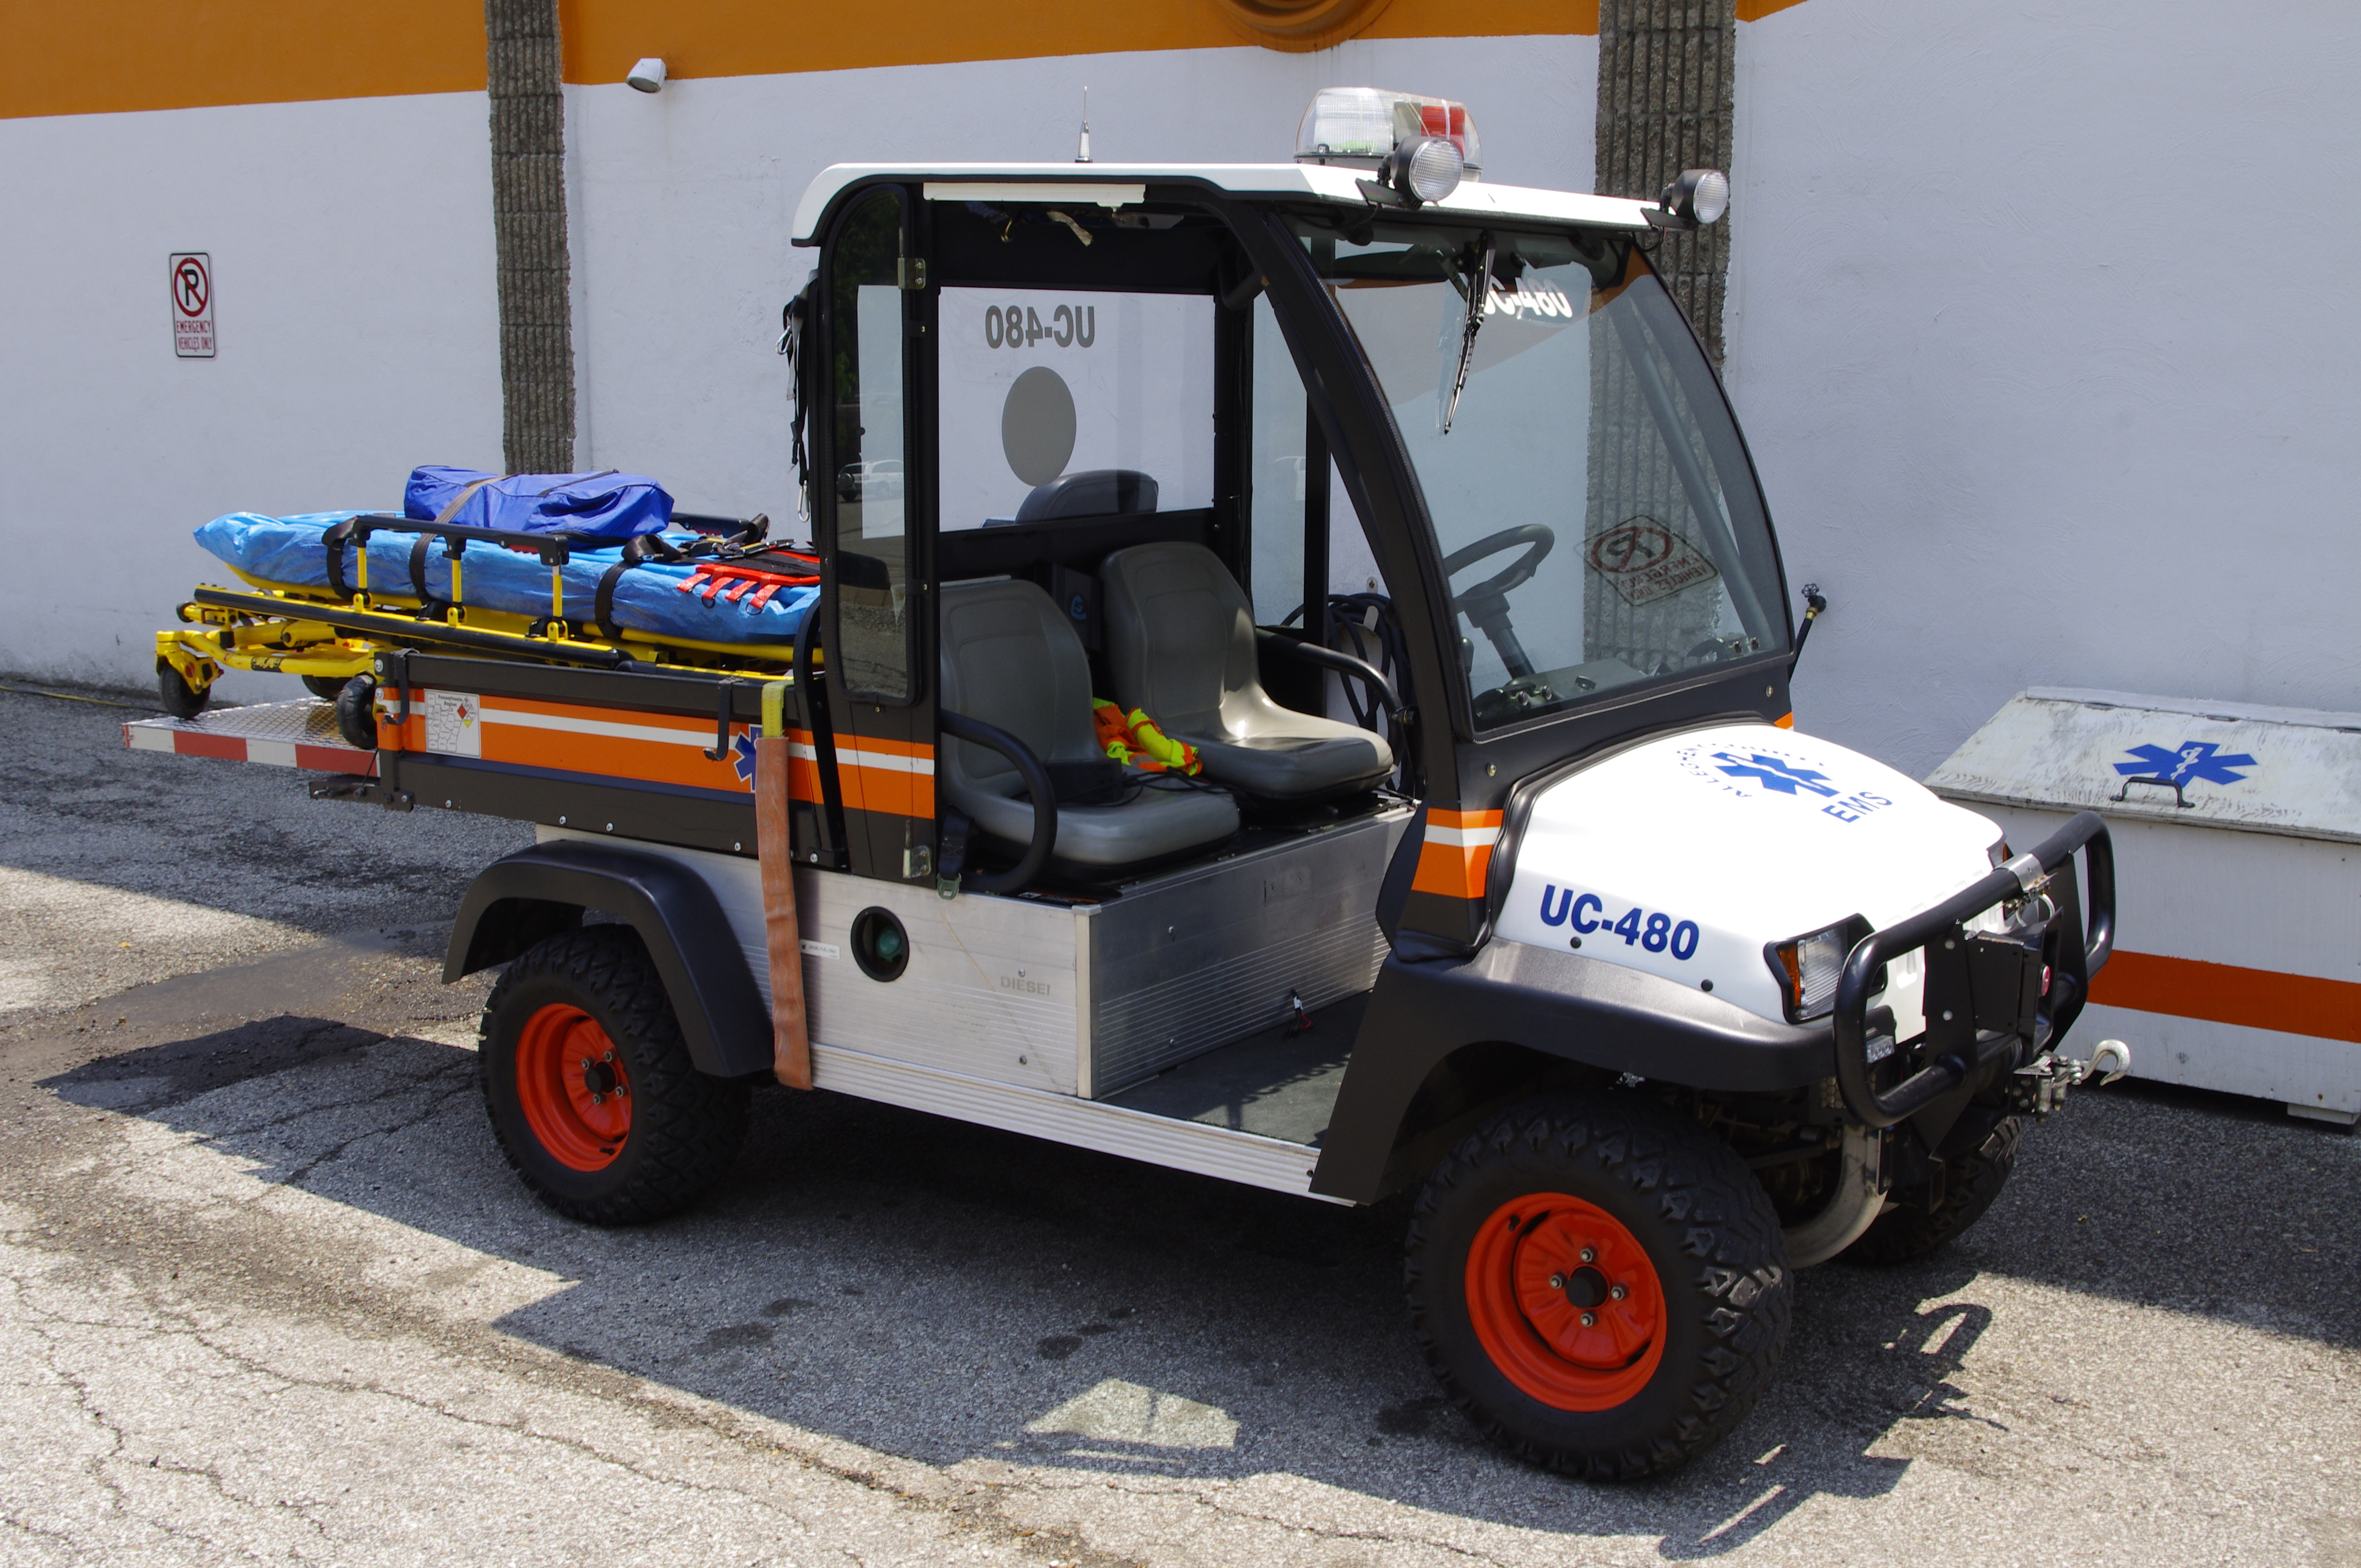 UC480- Bobcat utility vehicle